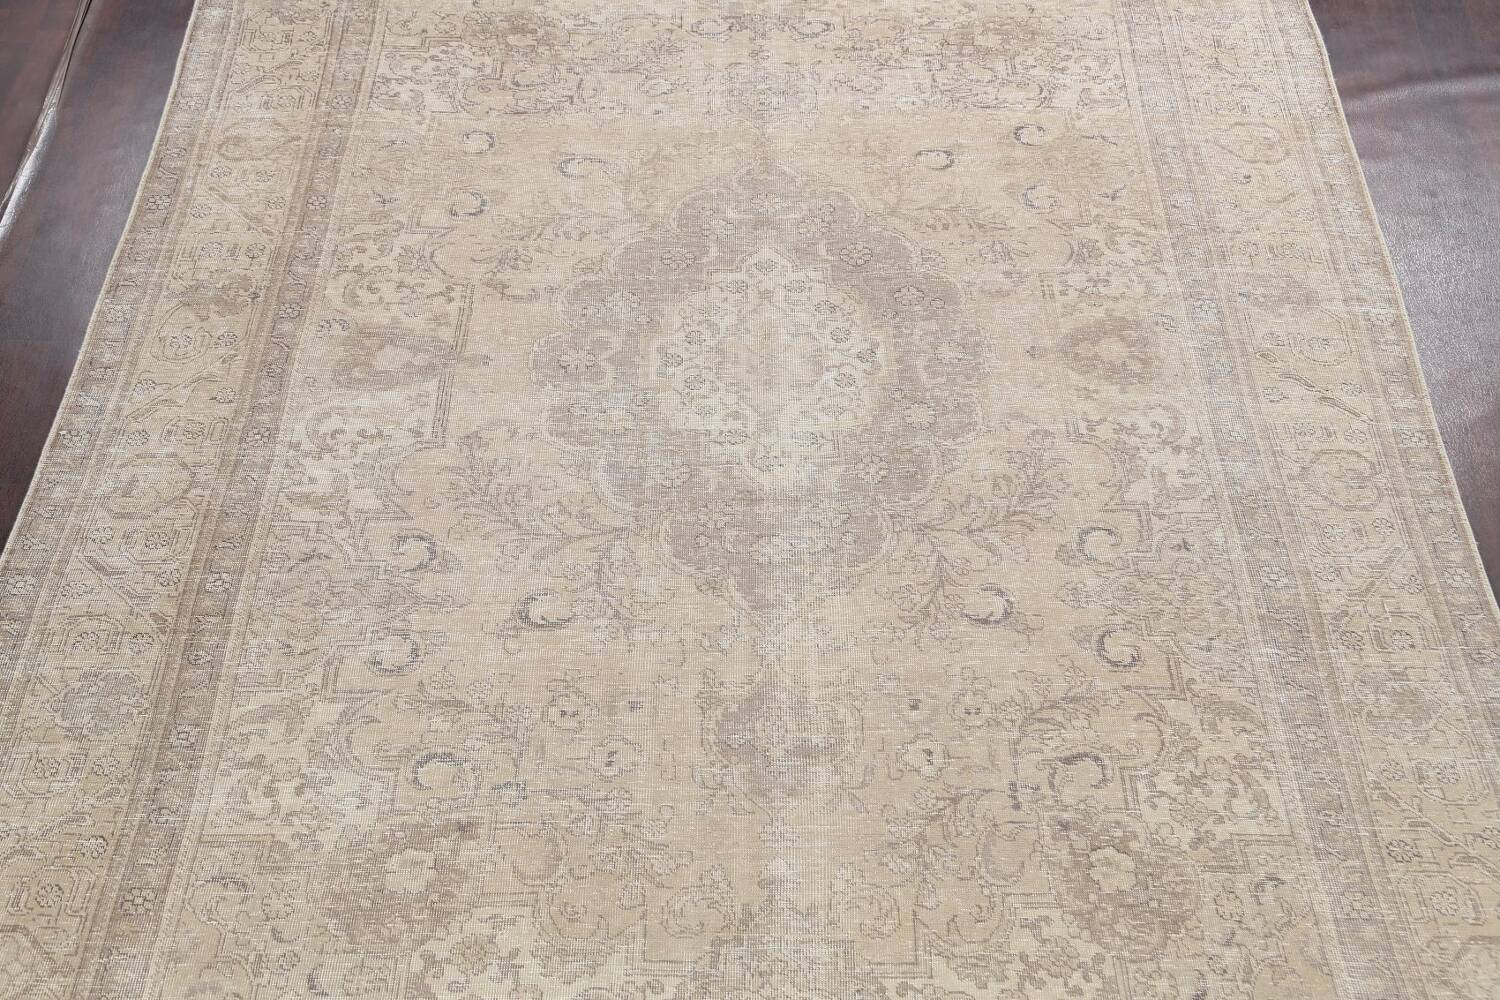 Muted Distressed Tabriz Persian Area Rug 9x12 image 3